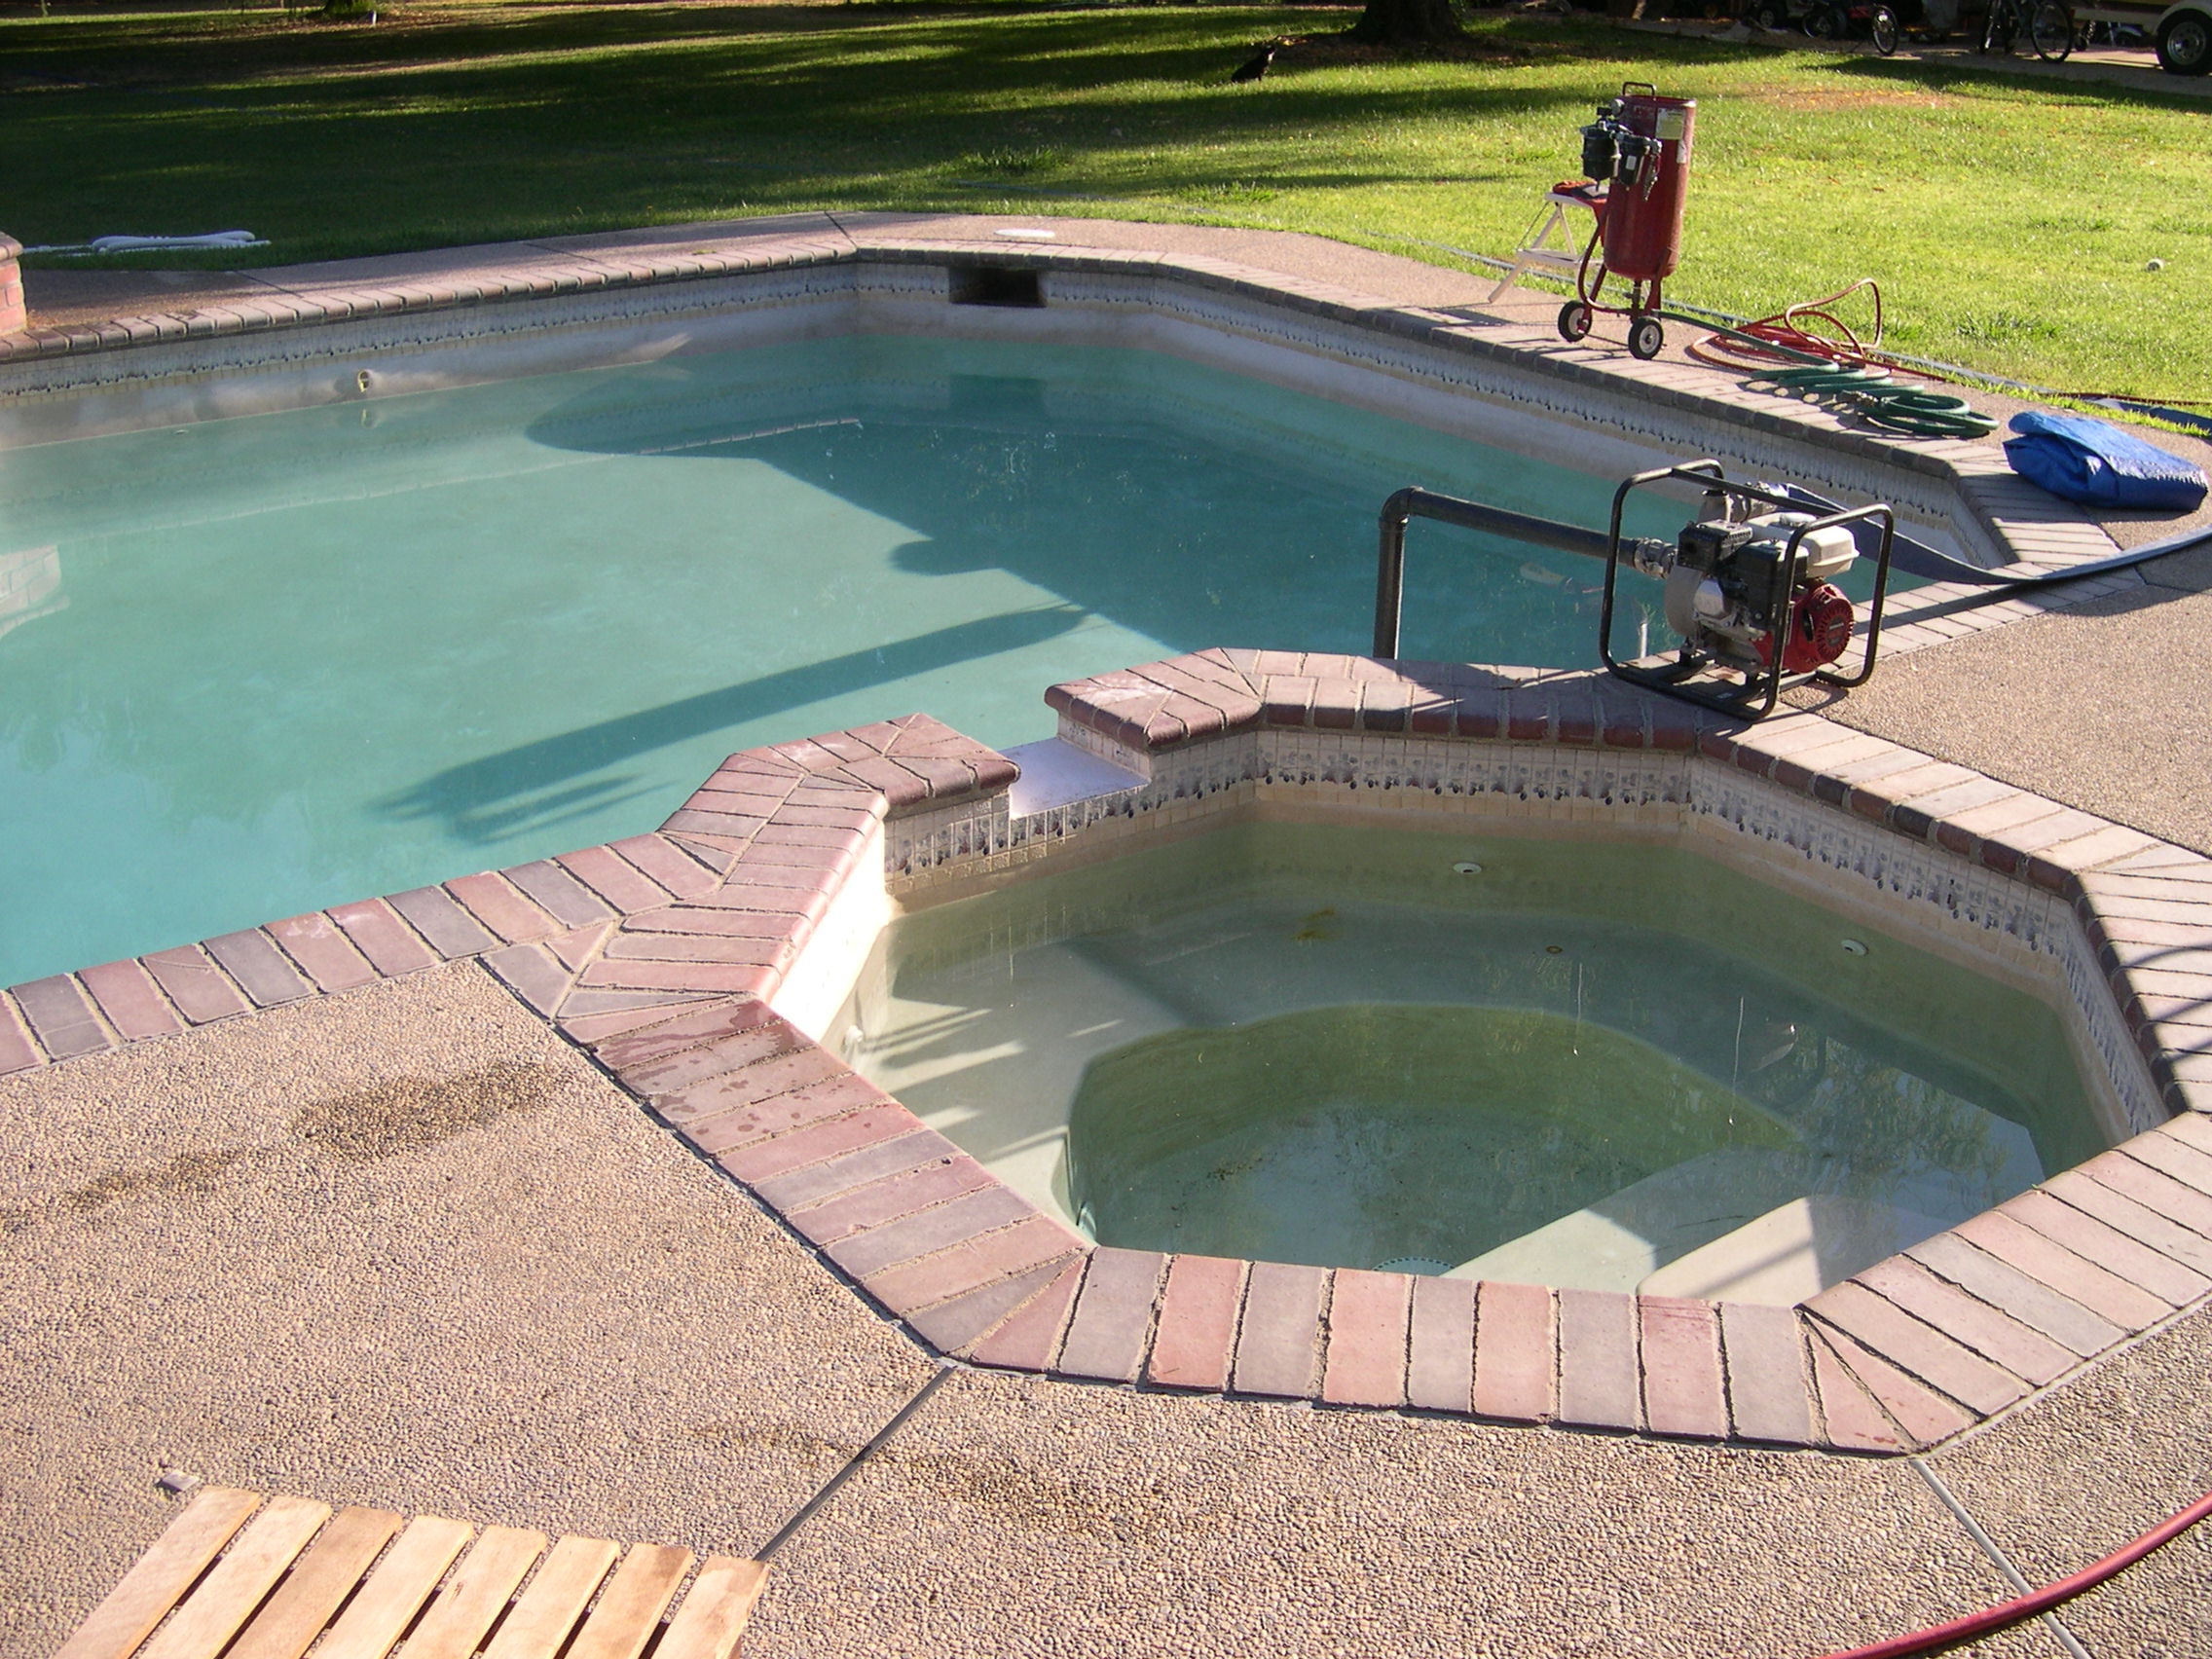 Pool Bull Nose Coping Cleaning - Hess Tile Cleaning